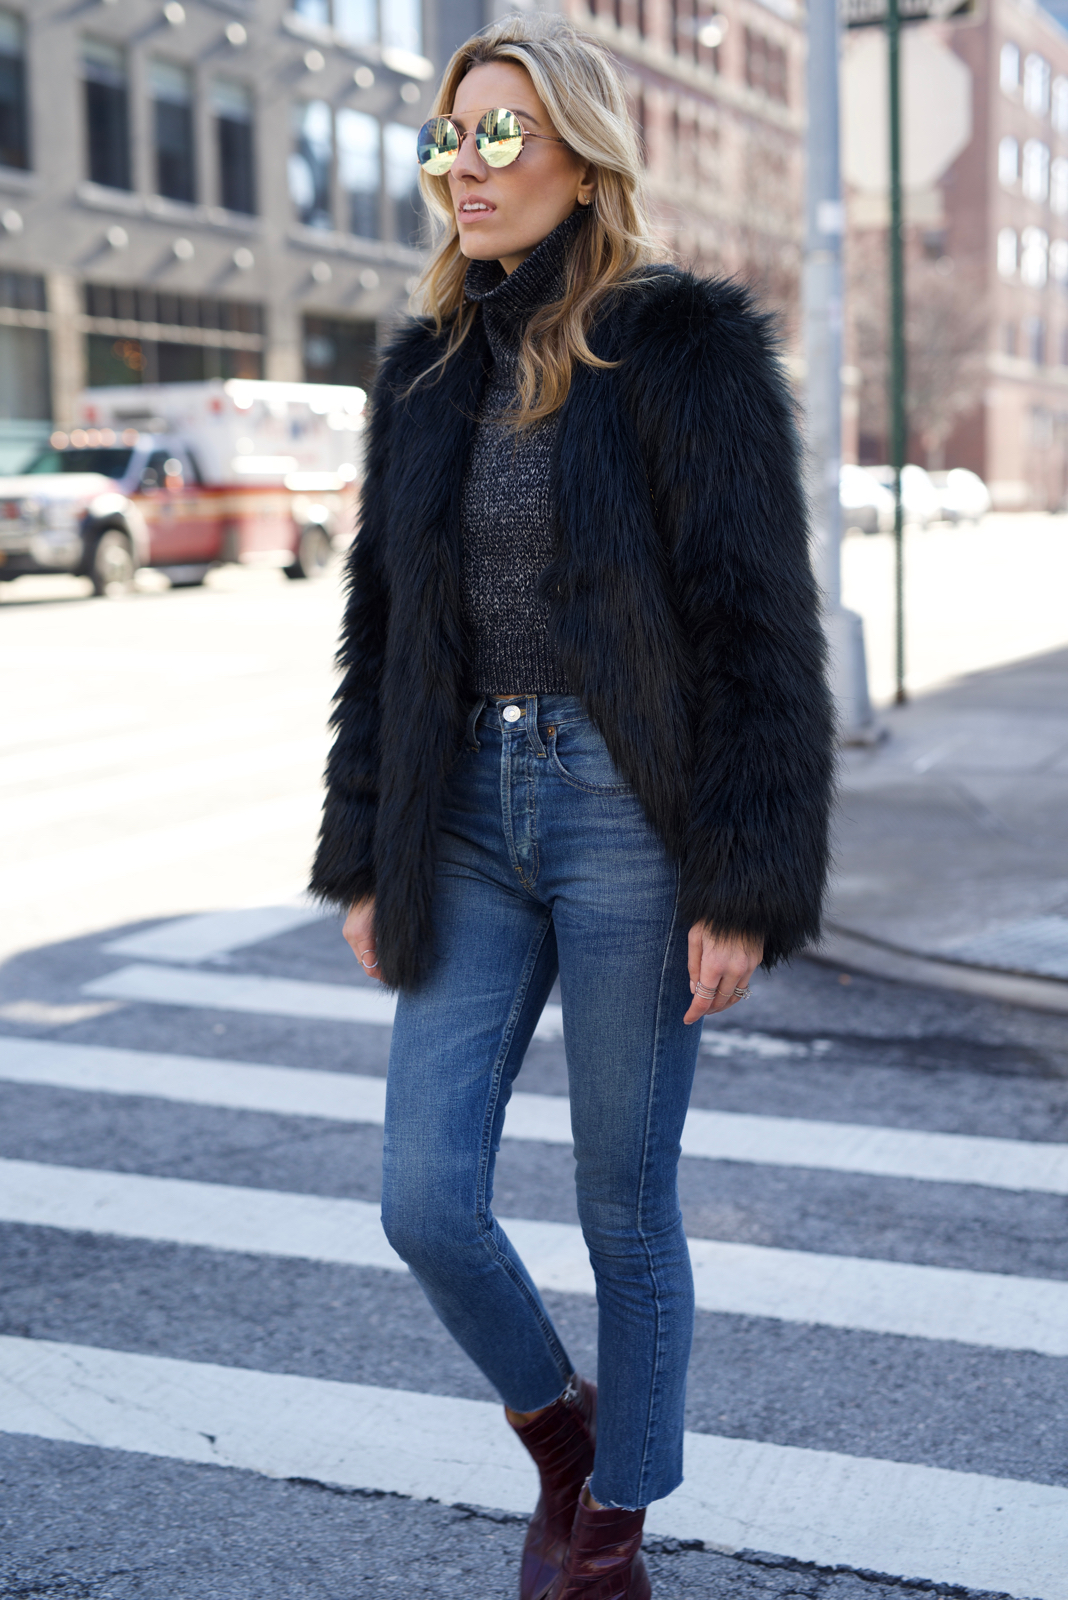 The Best High Waisted Jeans & Cropped Sweaters